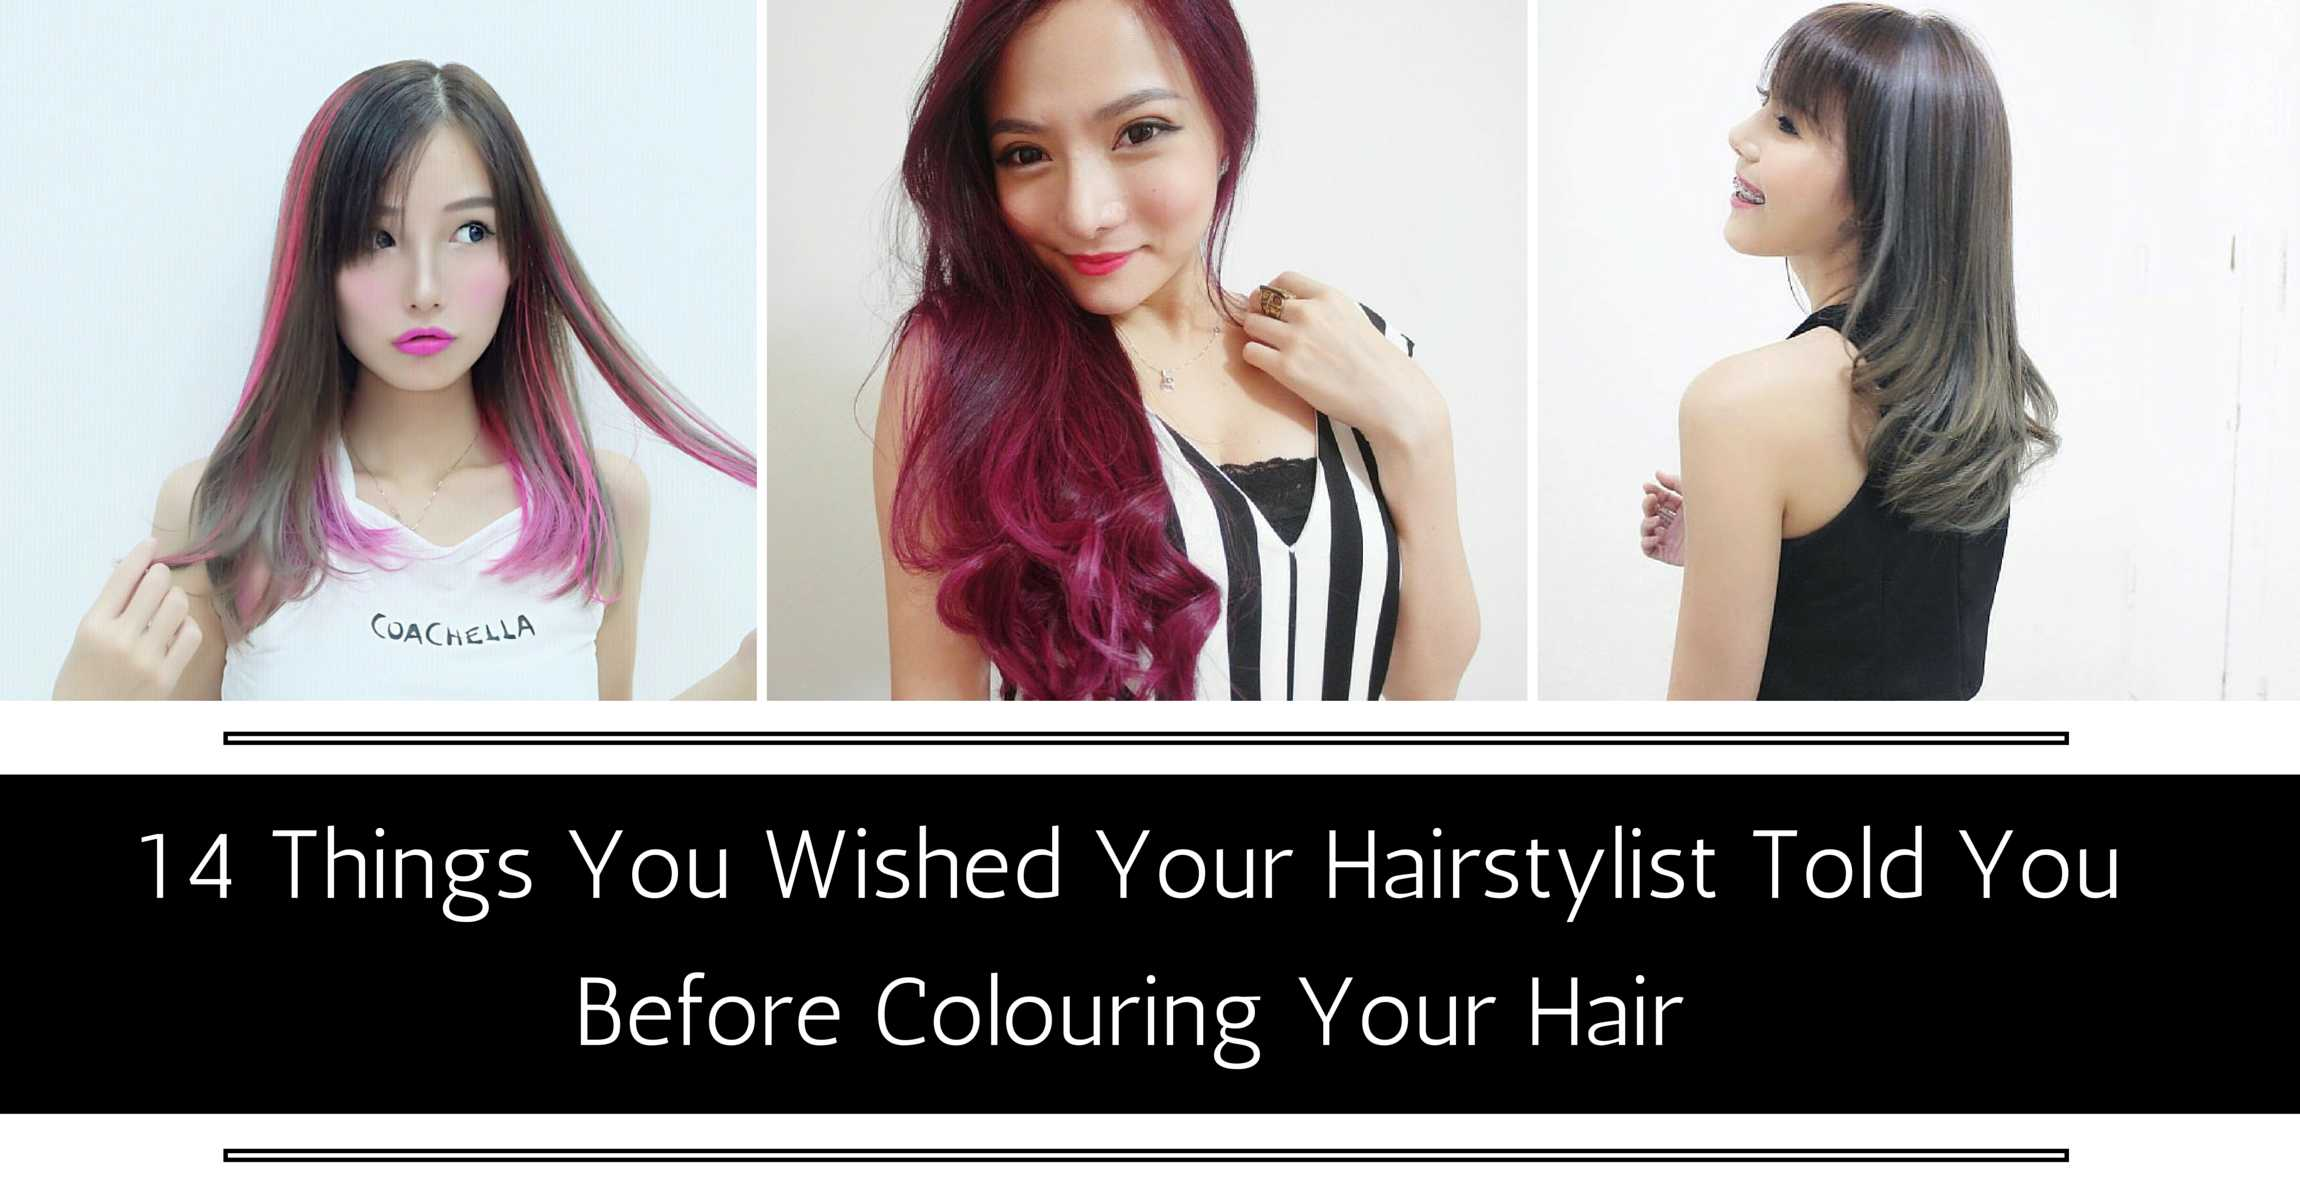 14 Things You Wished Your Hairstylist Told You Before Colouring Your